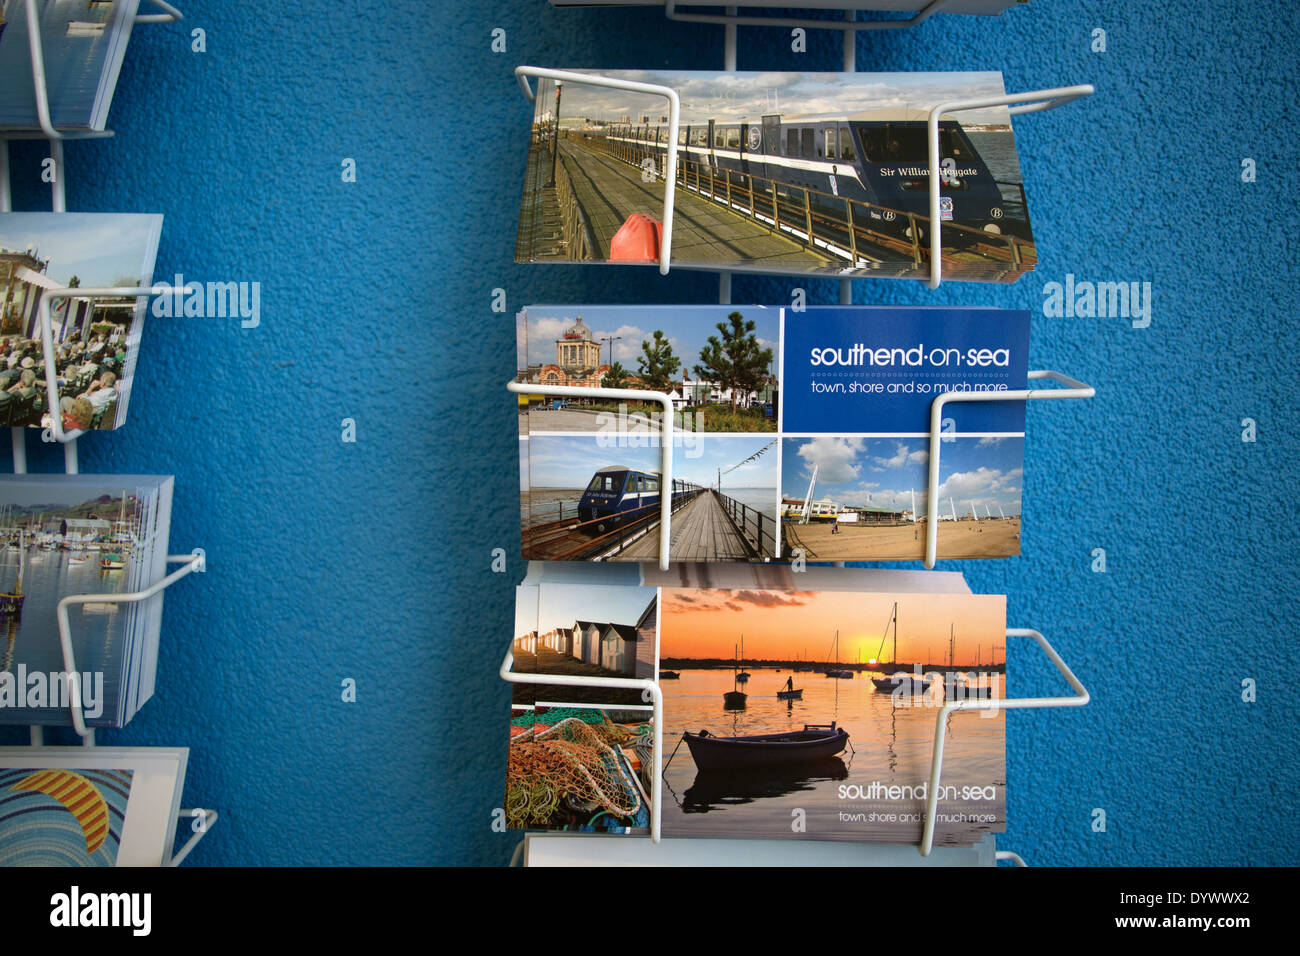 Postcards for sale in Southend-on-Sea, Essex, England, UK. The Southend postcards are displayed in a rack on a blue background. - Stock Image